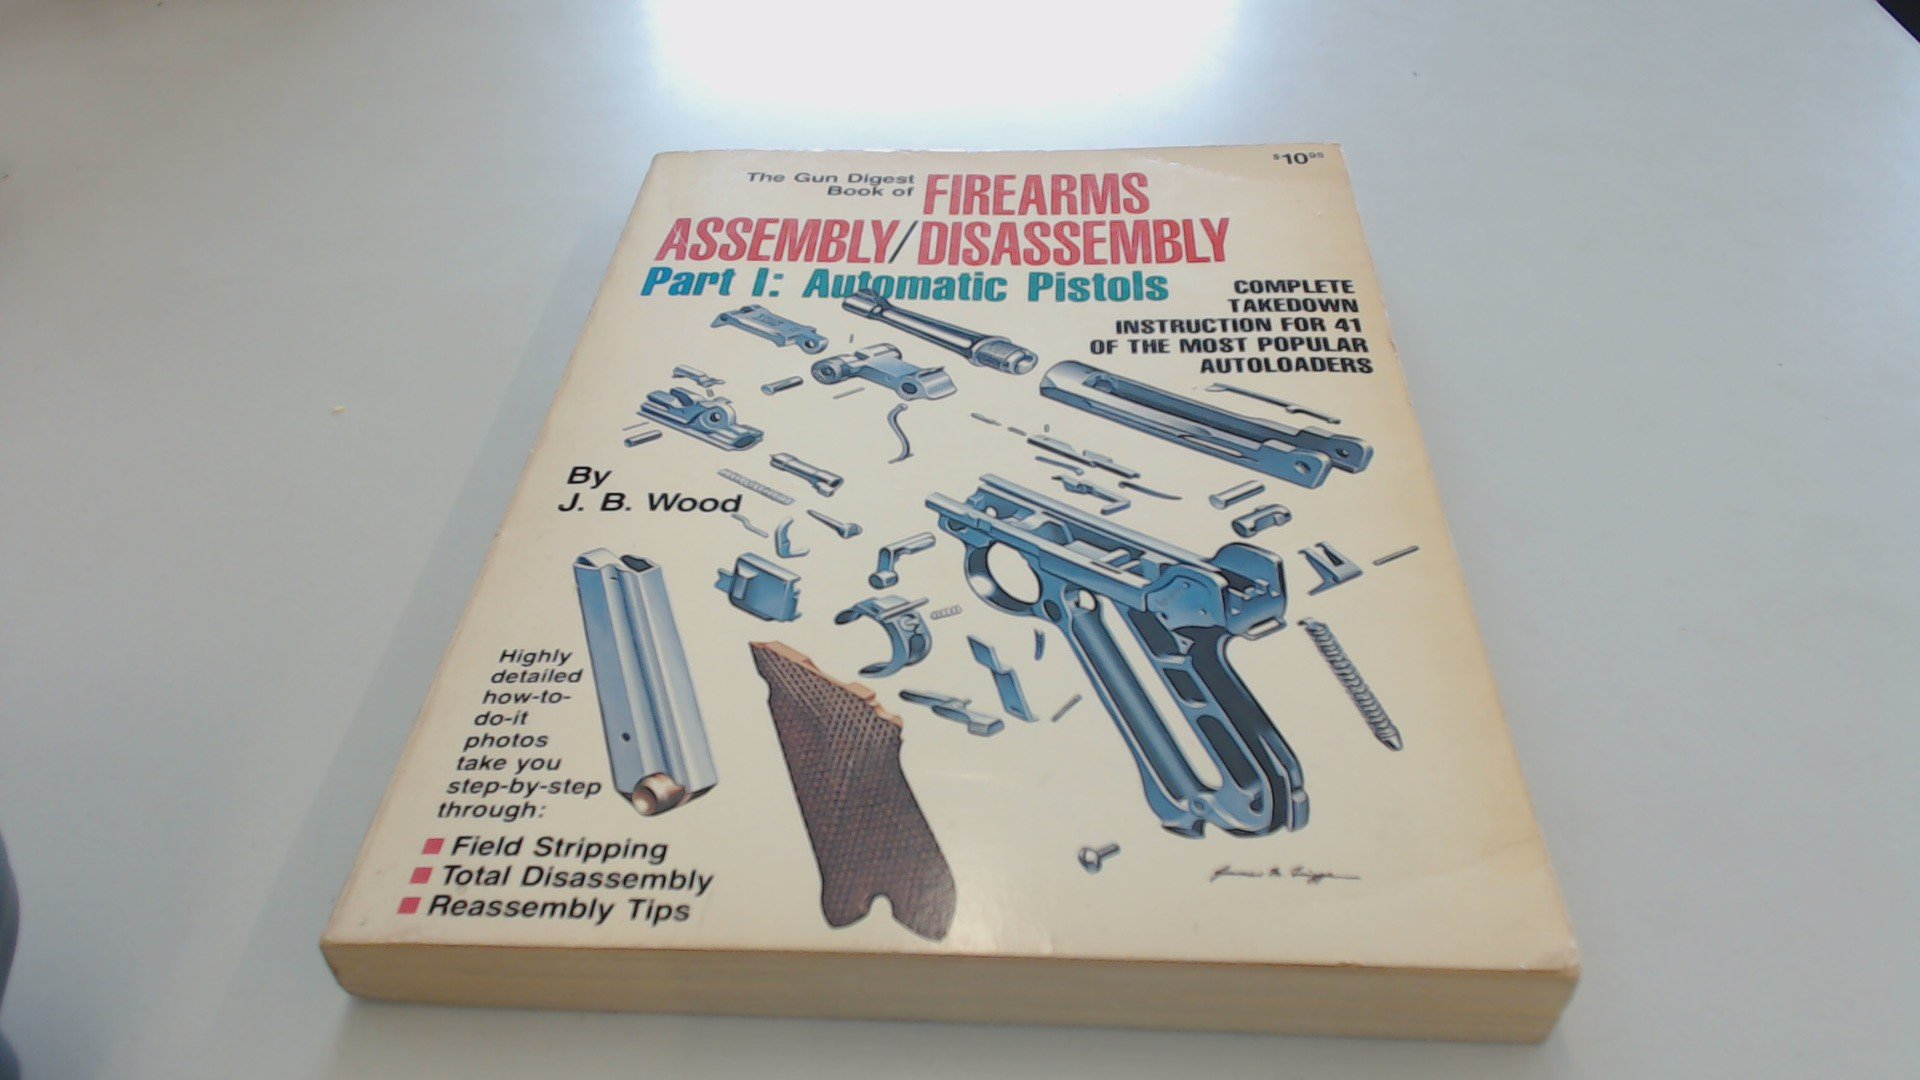 The Gun Digest Book Of Firearms Assemblydisassembly Part I